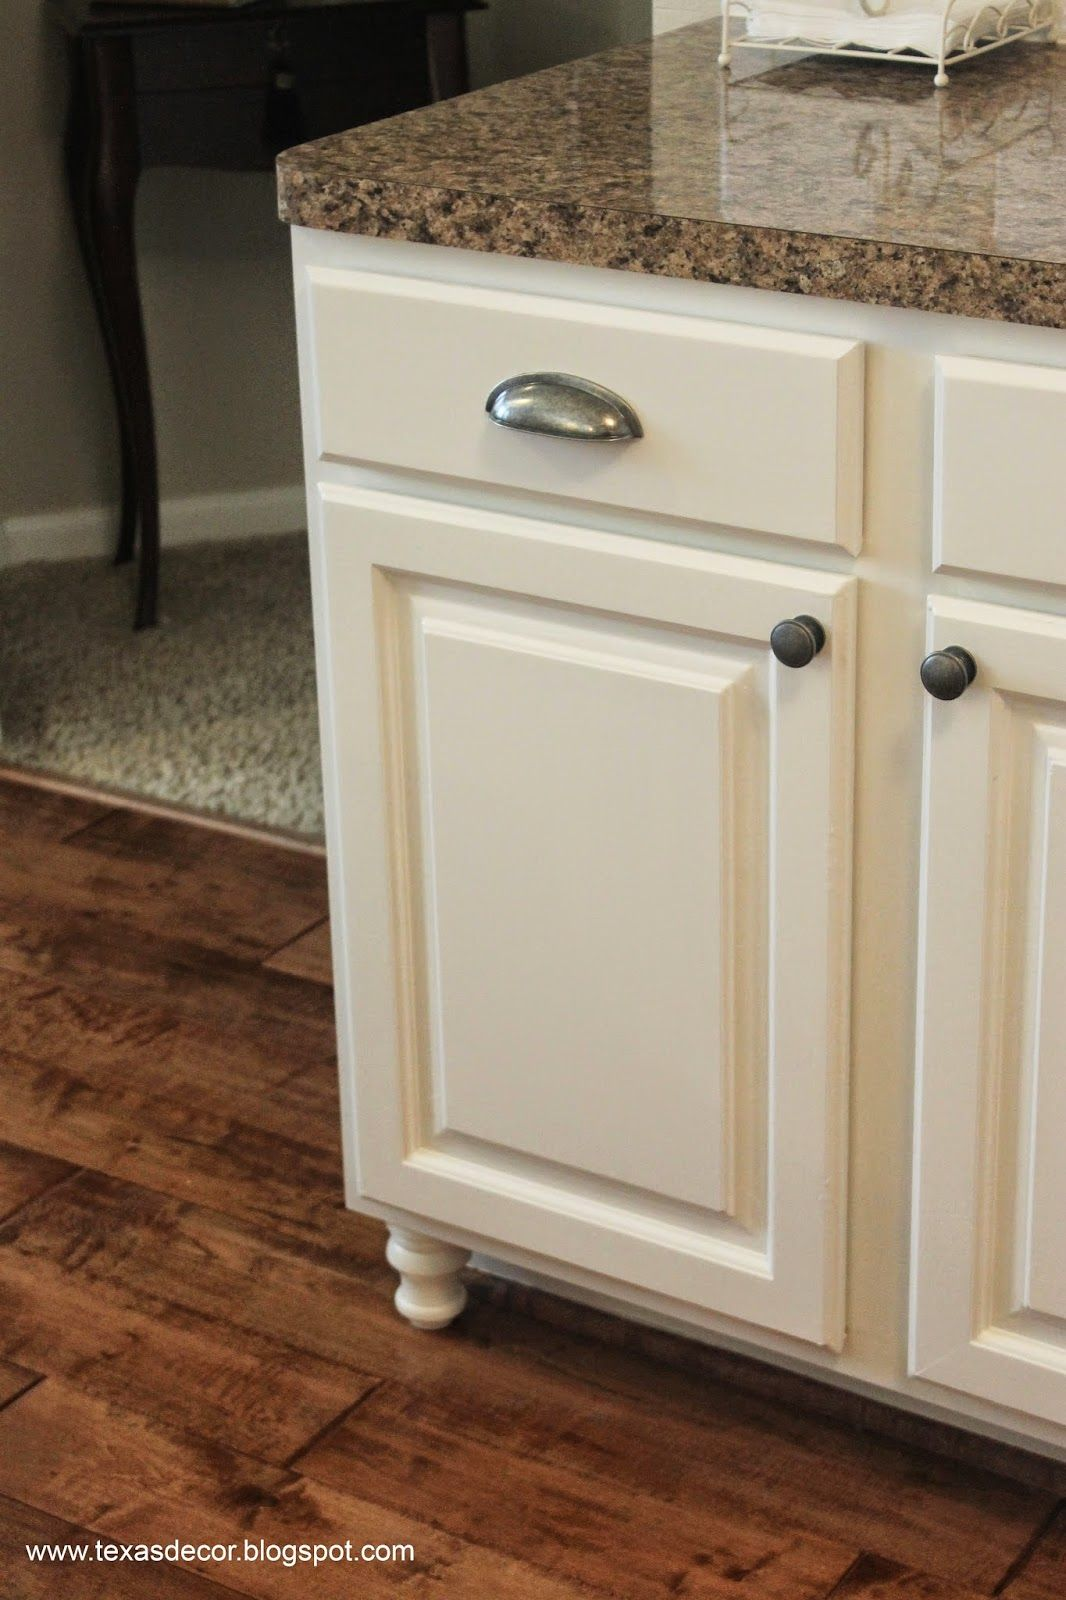 Adding furniture feet to kitchen cabinets mb homes pinterest